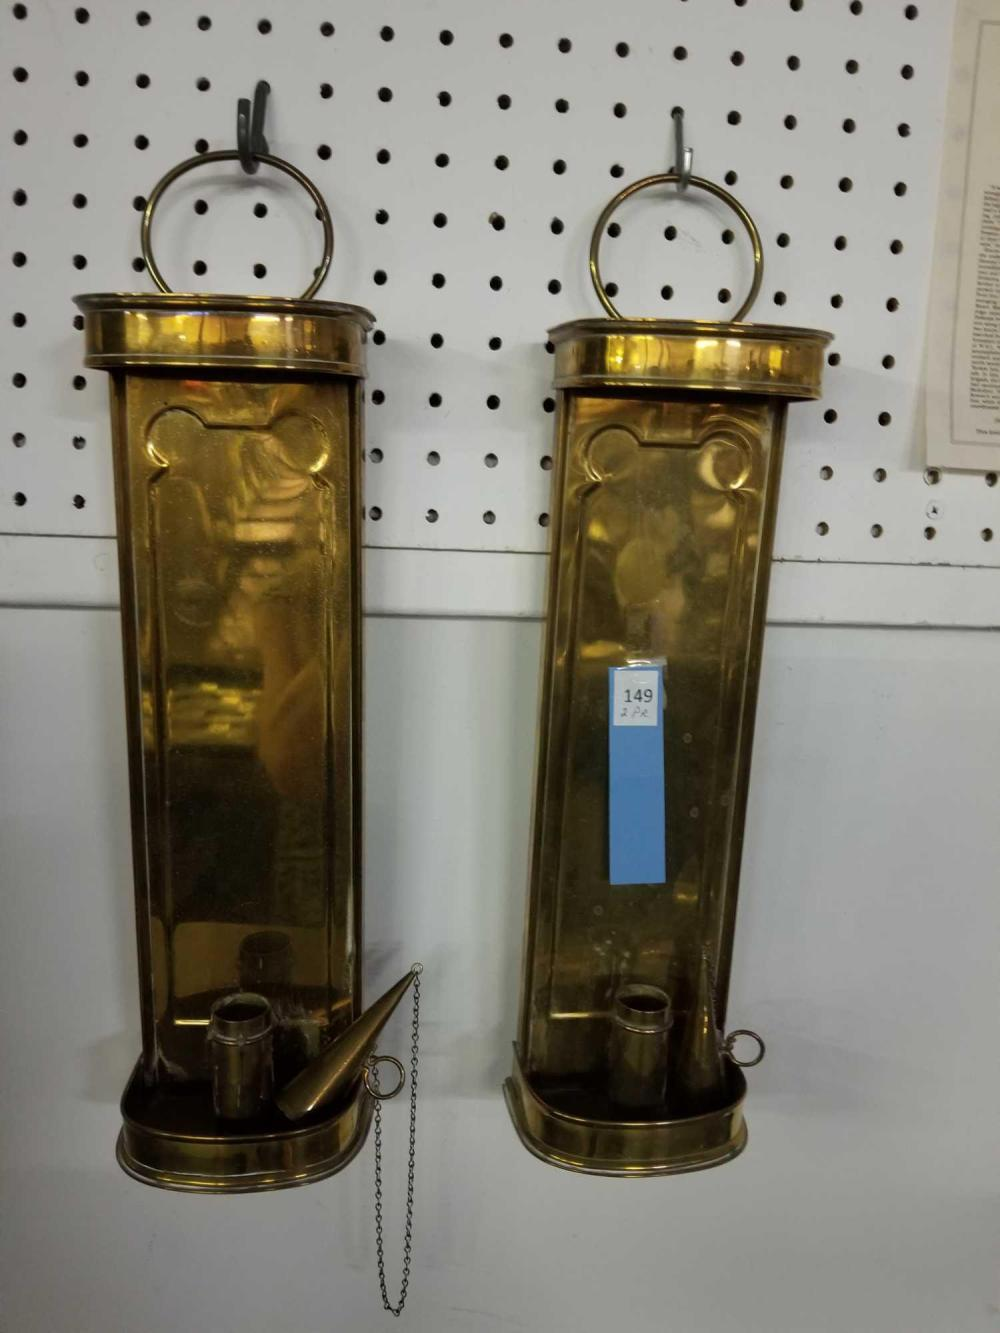 BRASS WALL CANDLE SCONCES - 2 PAIR